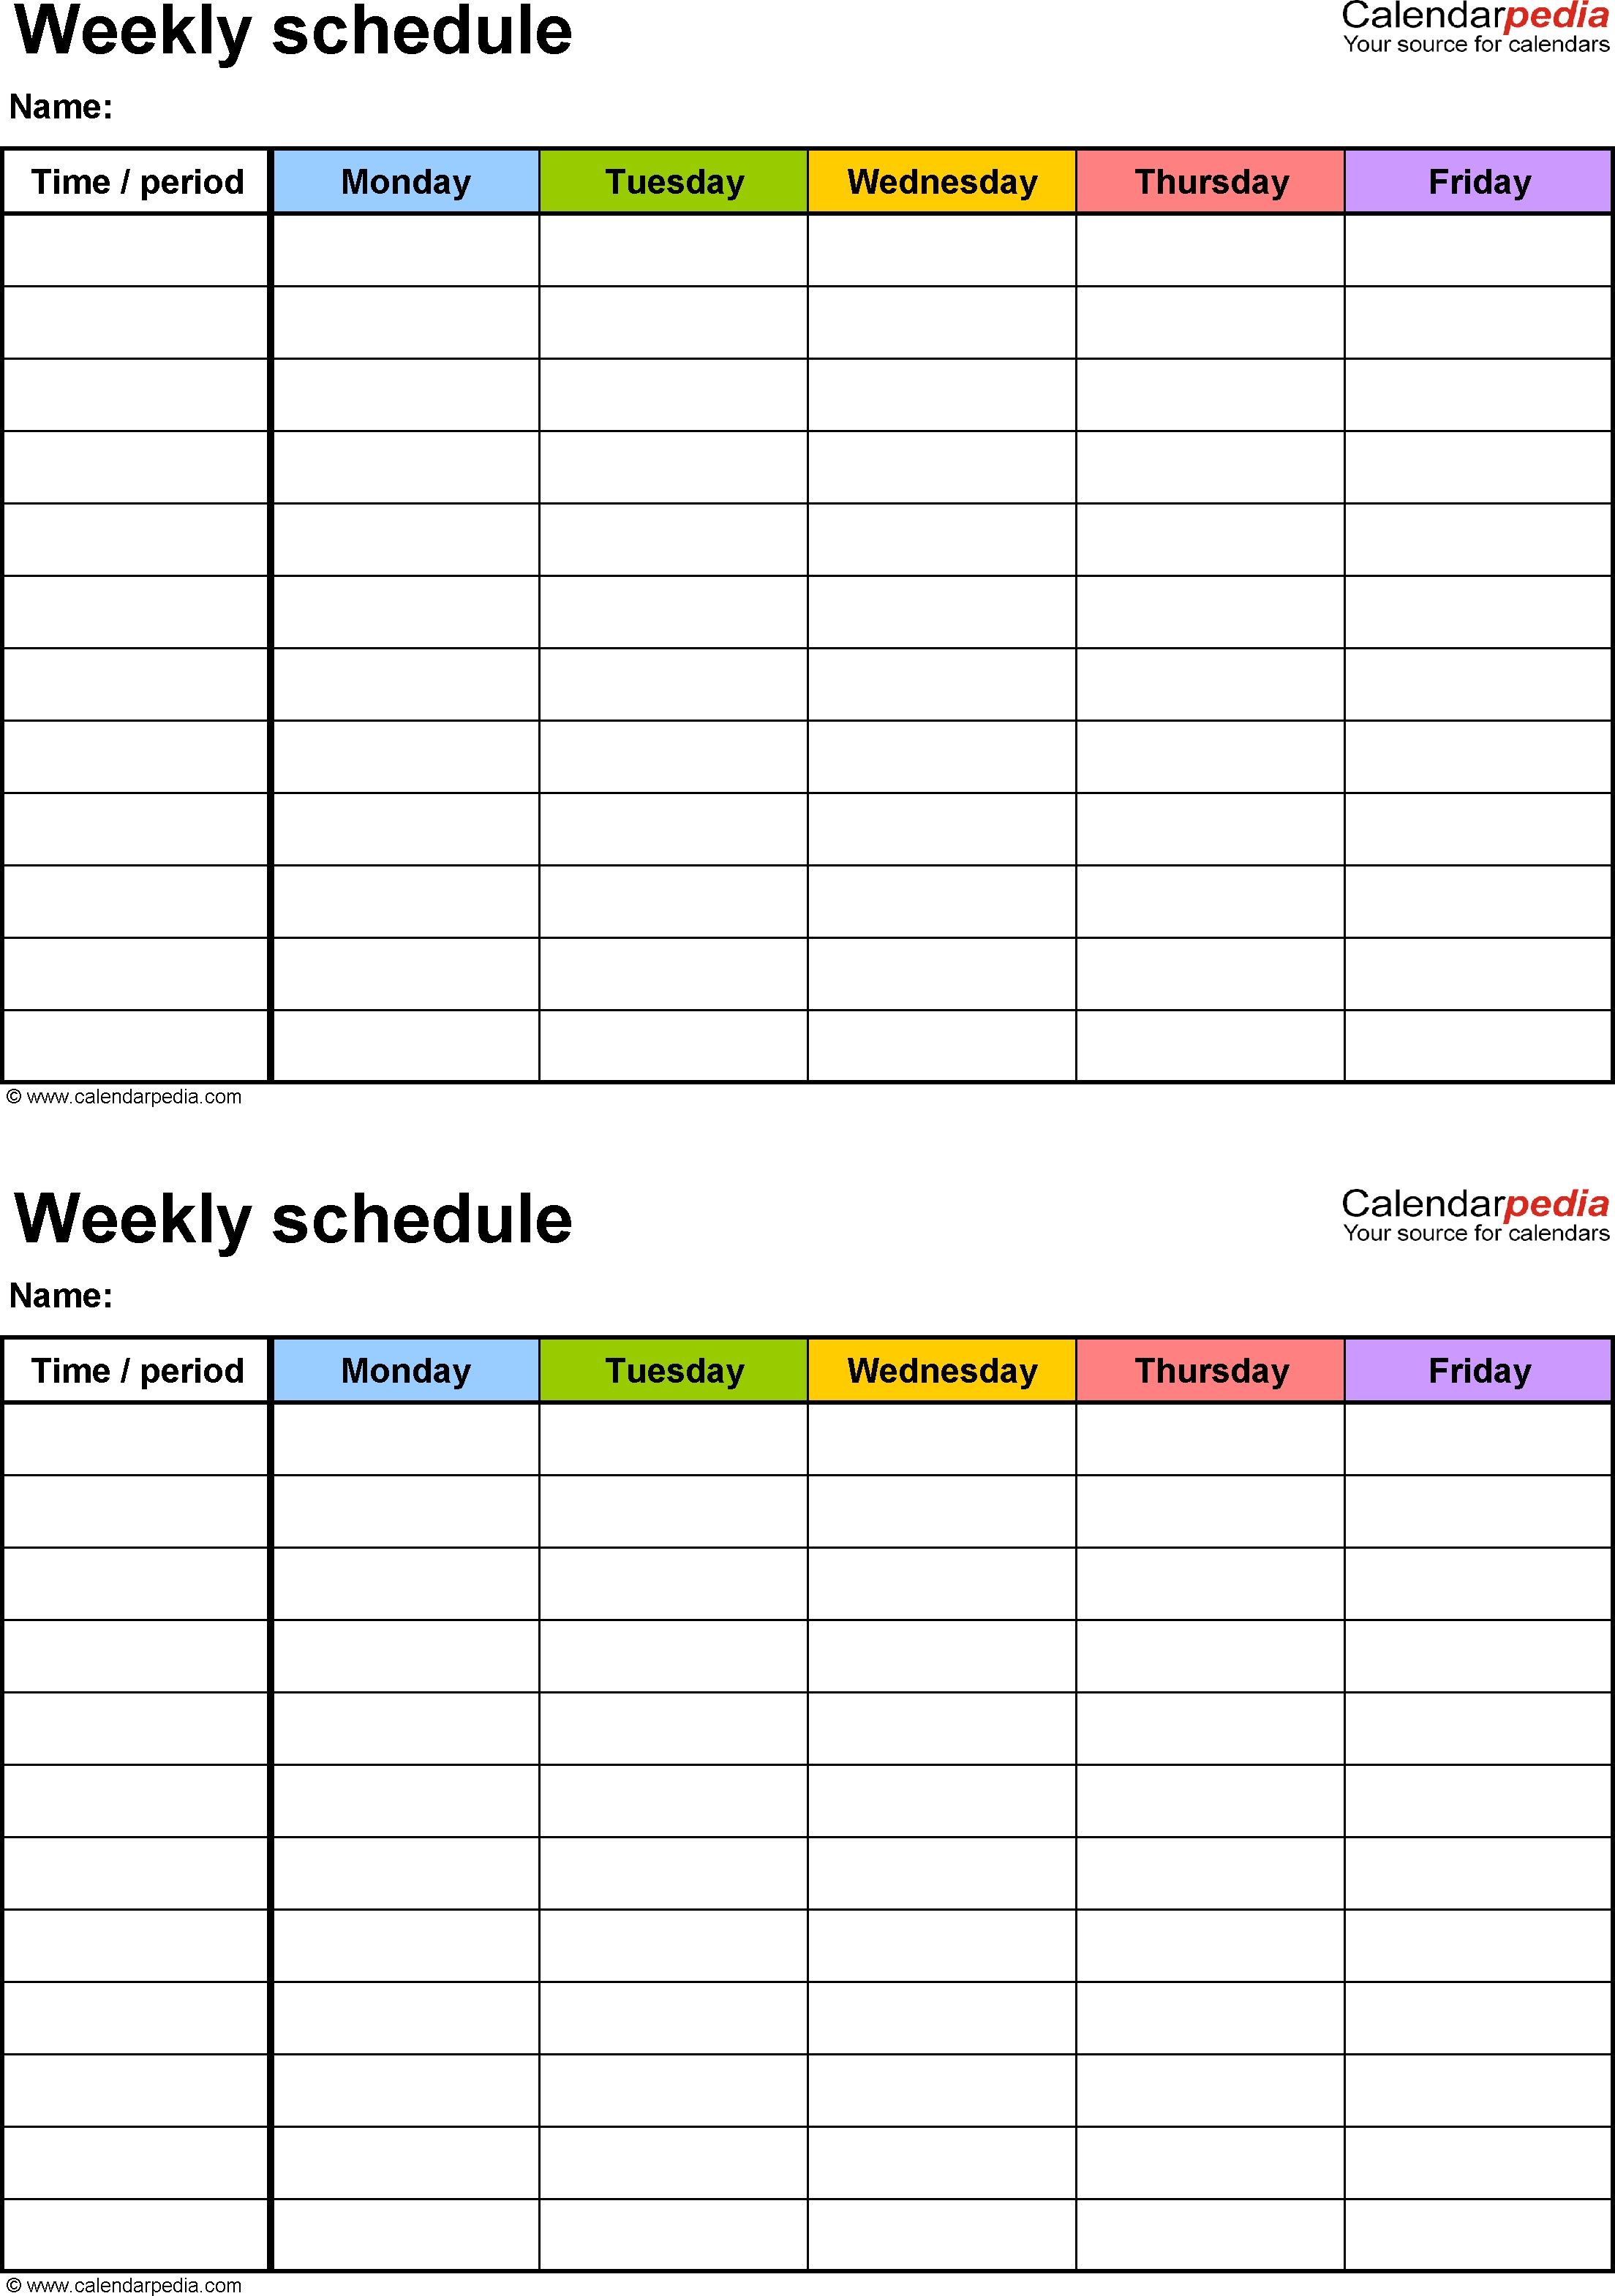 Free Weekly Schedule Templates For Word - 18 Templates-School Calendar Template Google Sheets